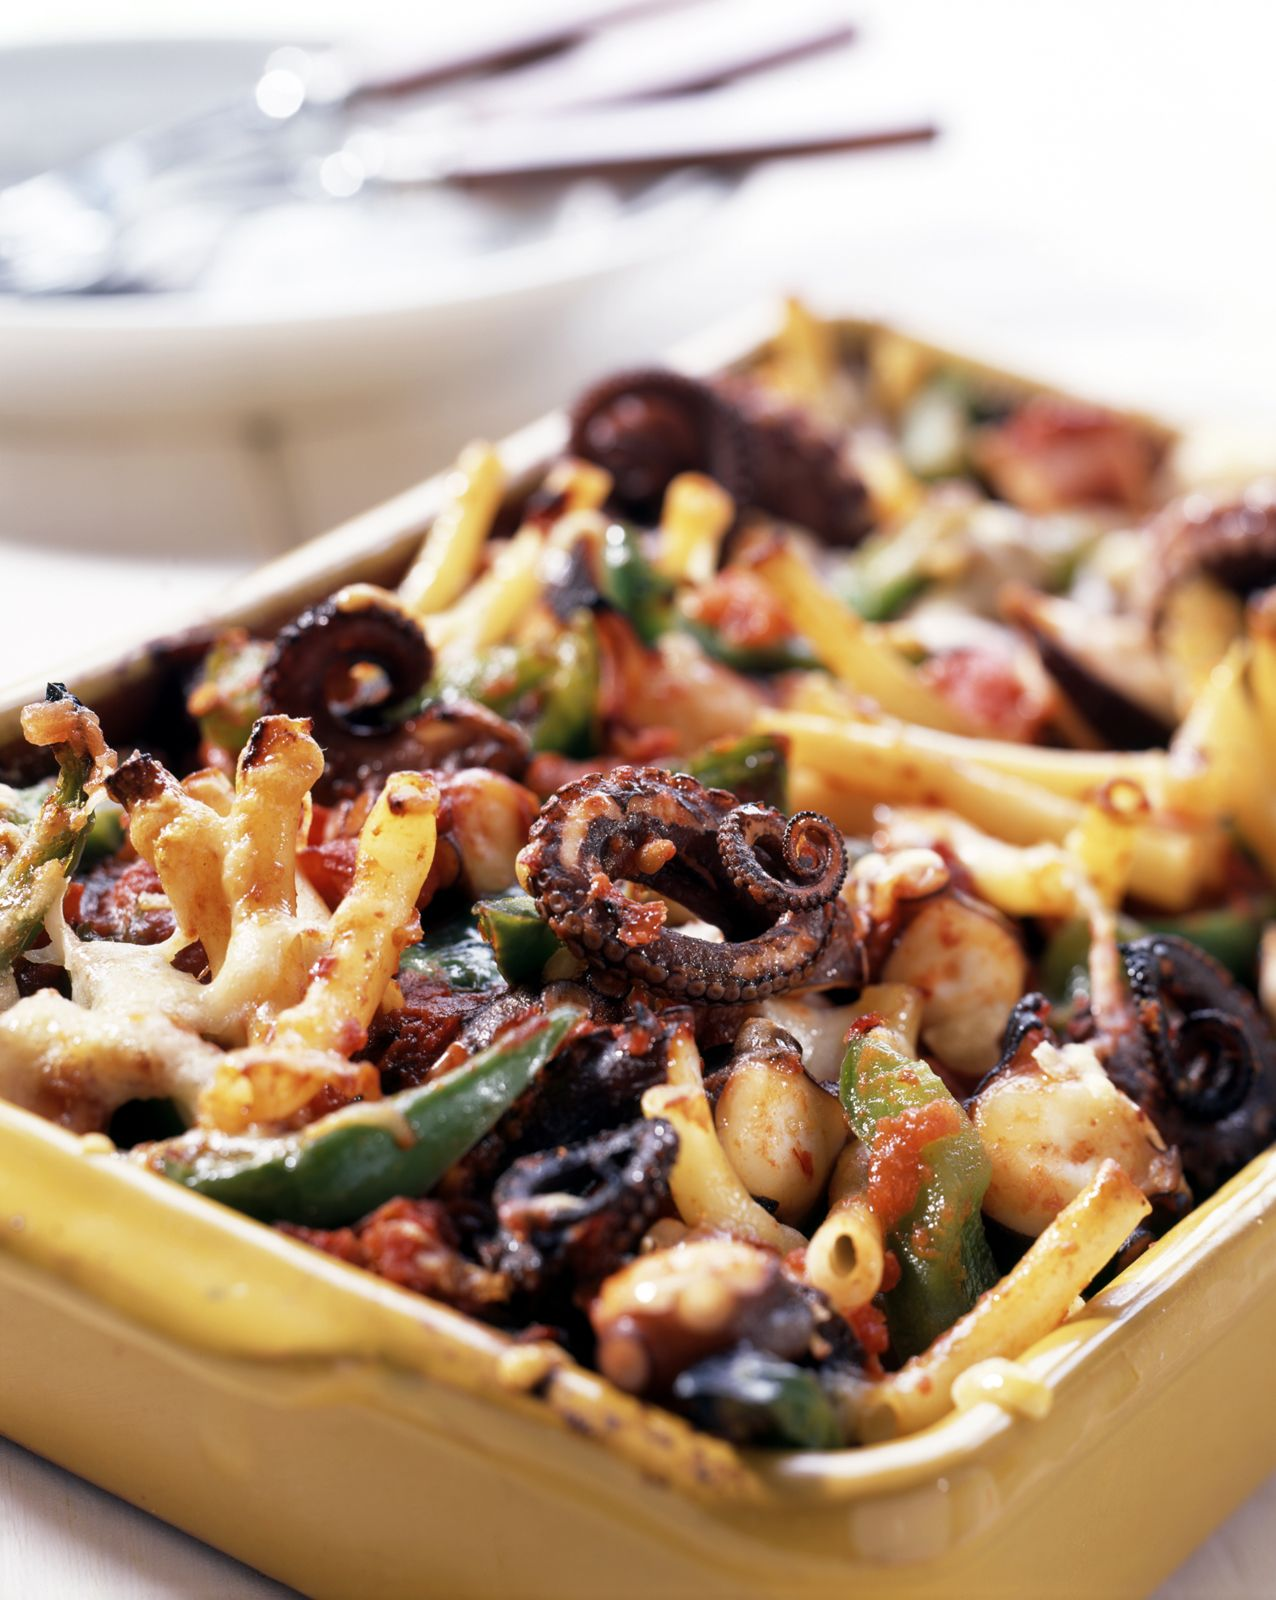 Baked Pasta with Octopus recipe